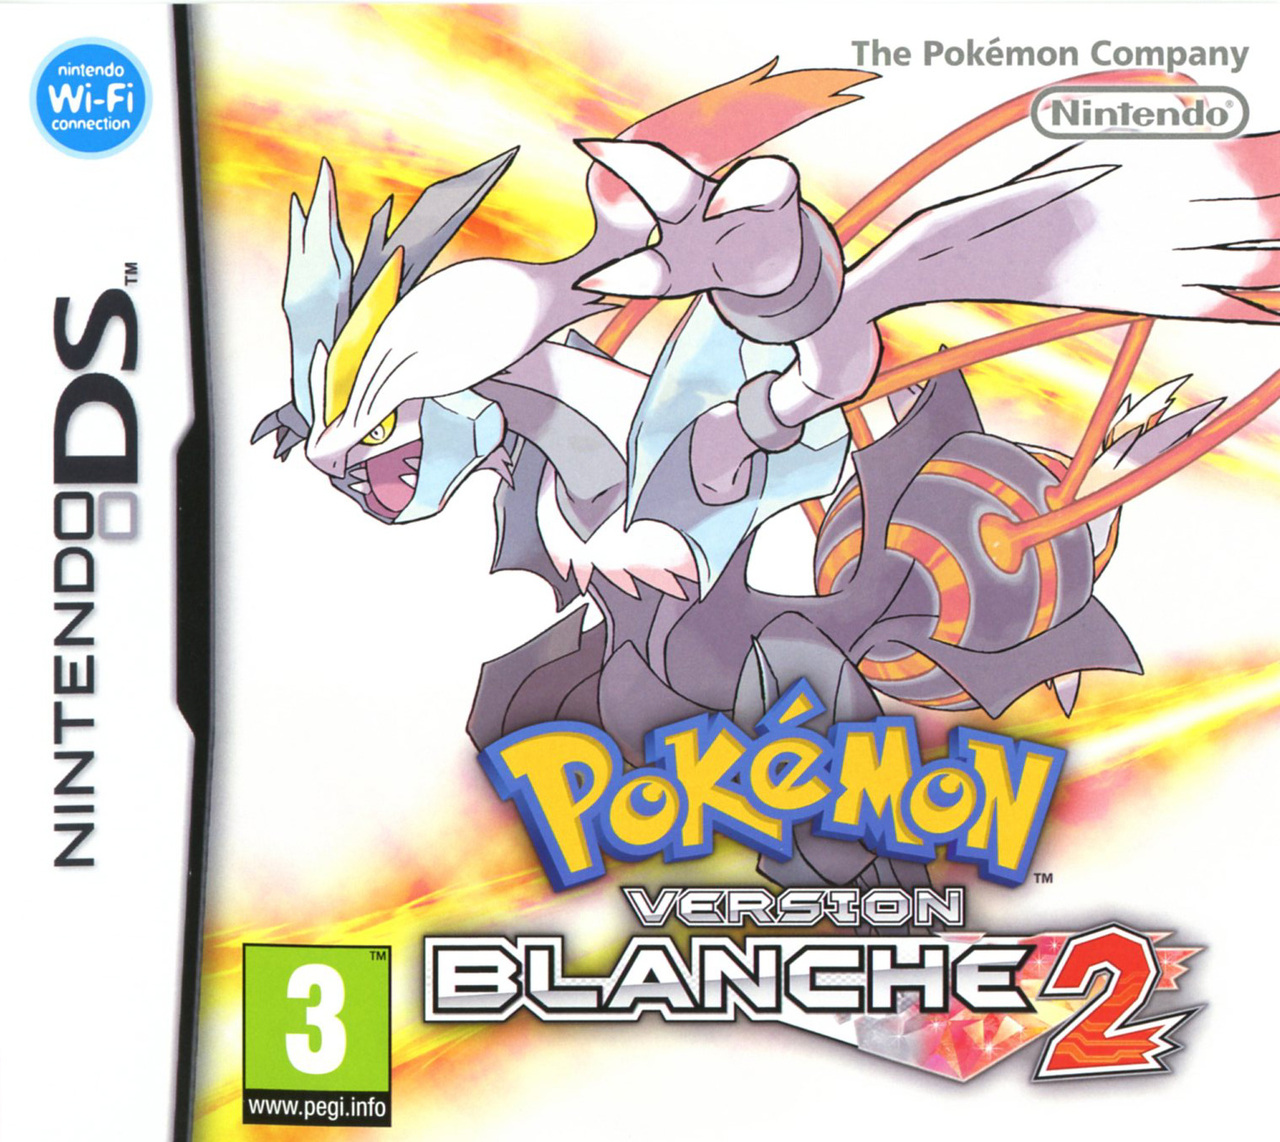 Nintendo Ds Pokemon Games : Pokémon version blanche sur nintendo ds jeuxvideo